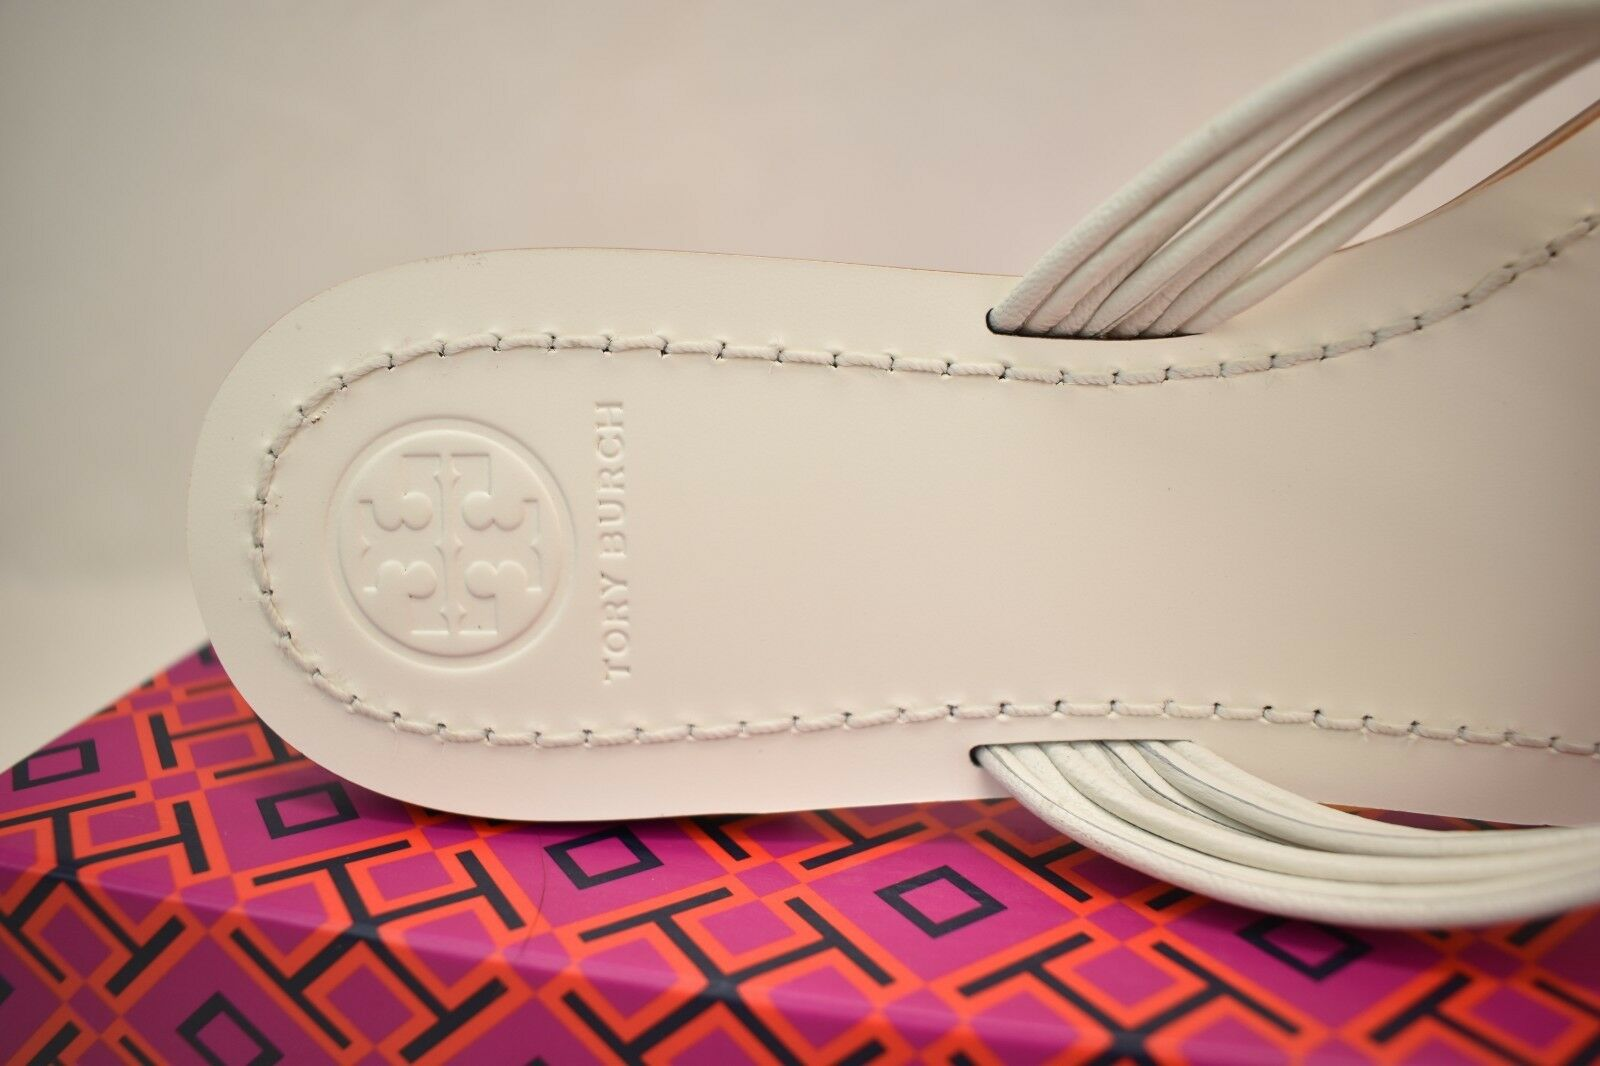 d52d4ebb103 Tory Burch Sienna White Glove Nappa Leather Reva Thong Sandals 11 for sale  online